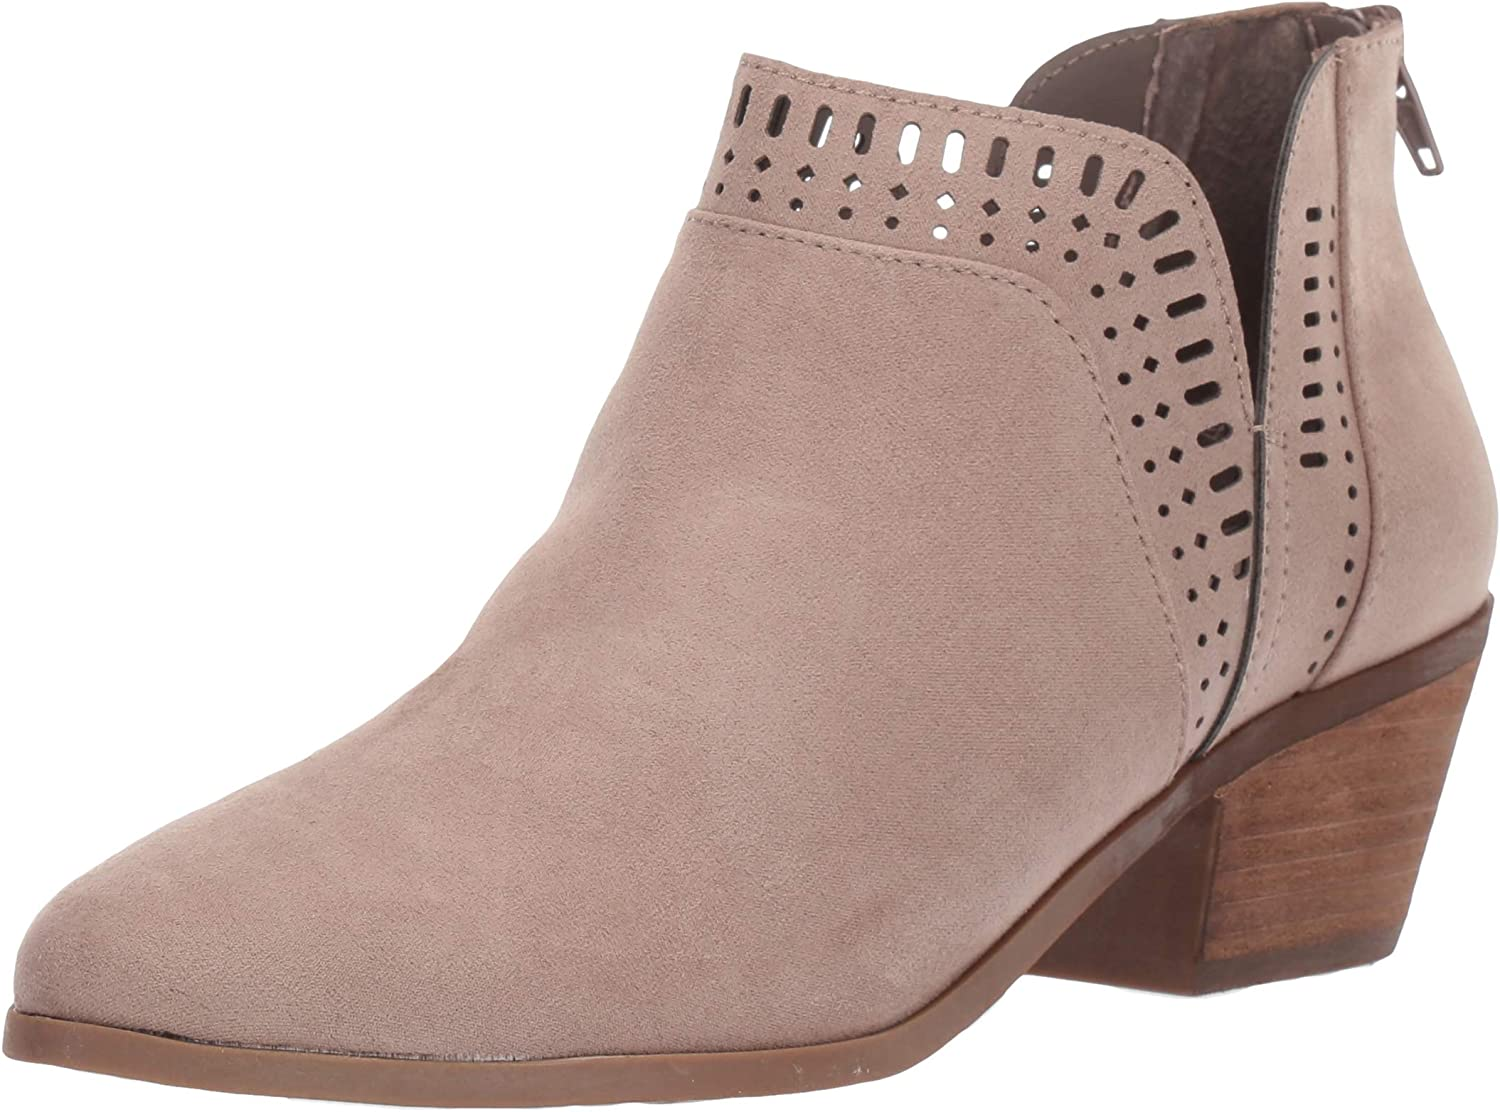 Carlos New sales by Max 69% OFF Santana Women's Ankle Boot Marteen